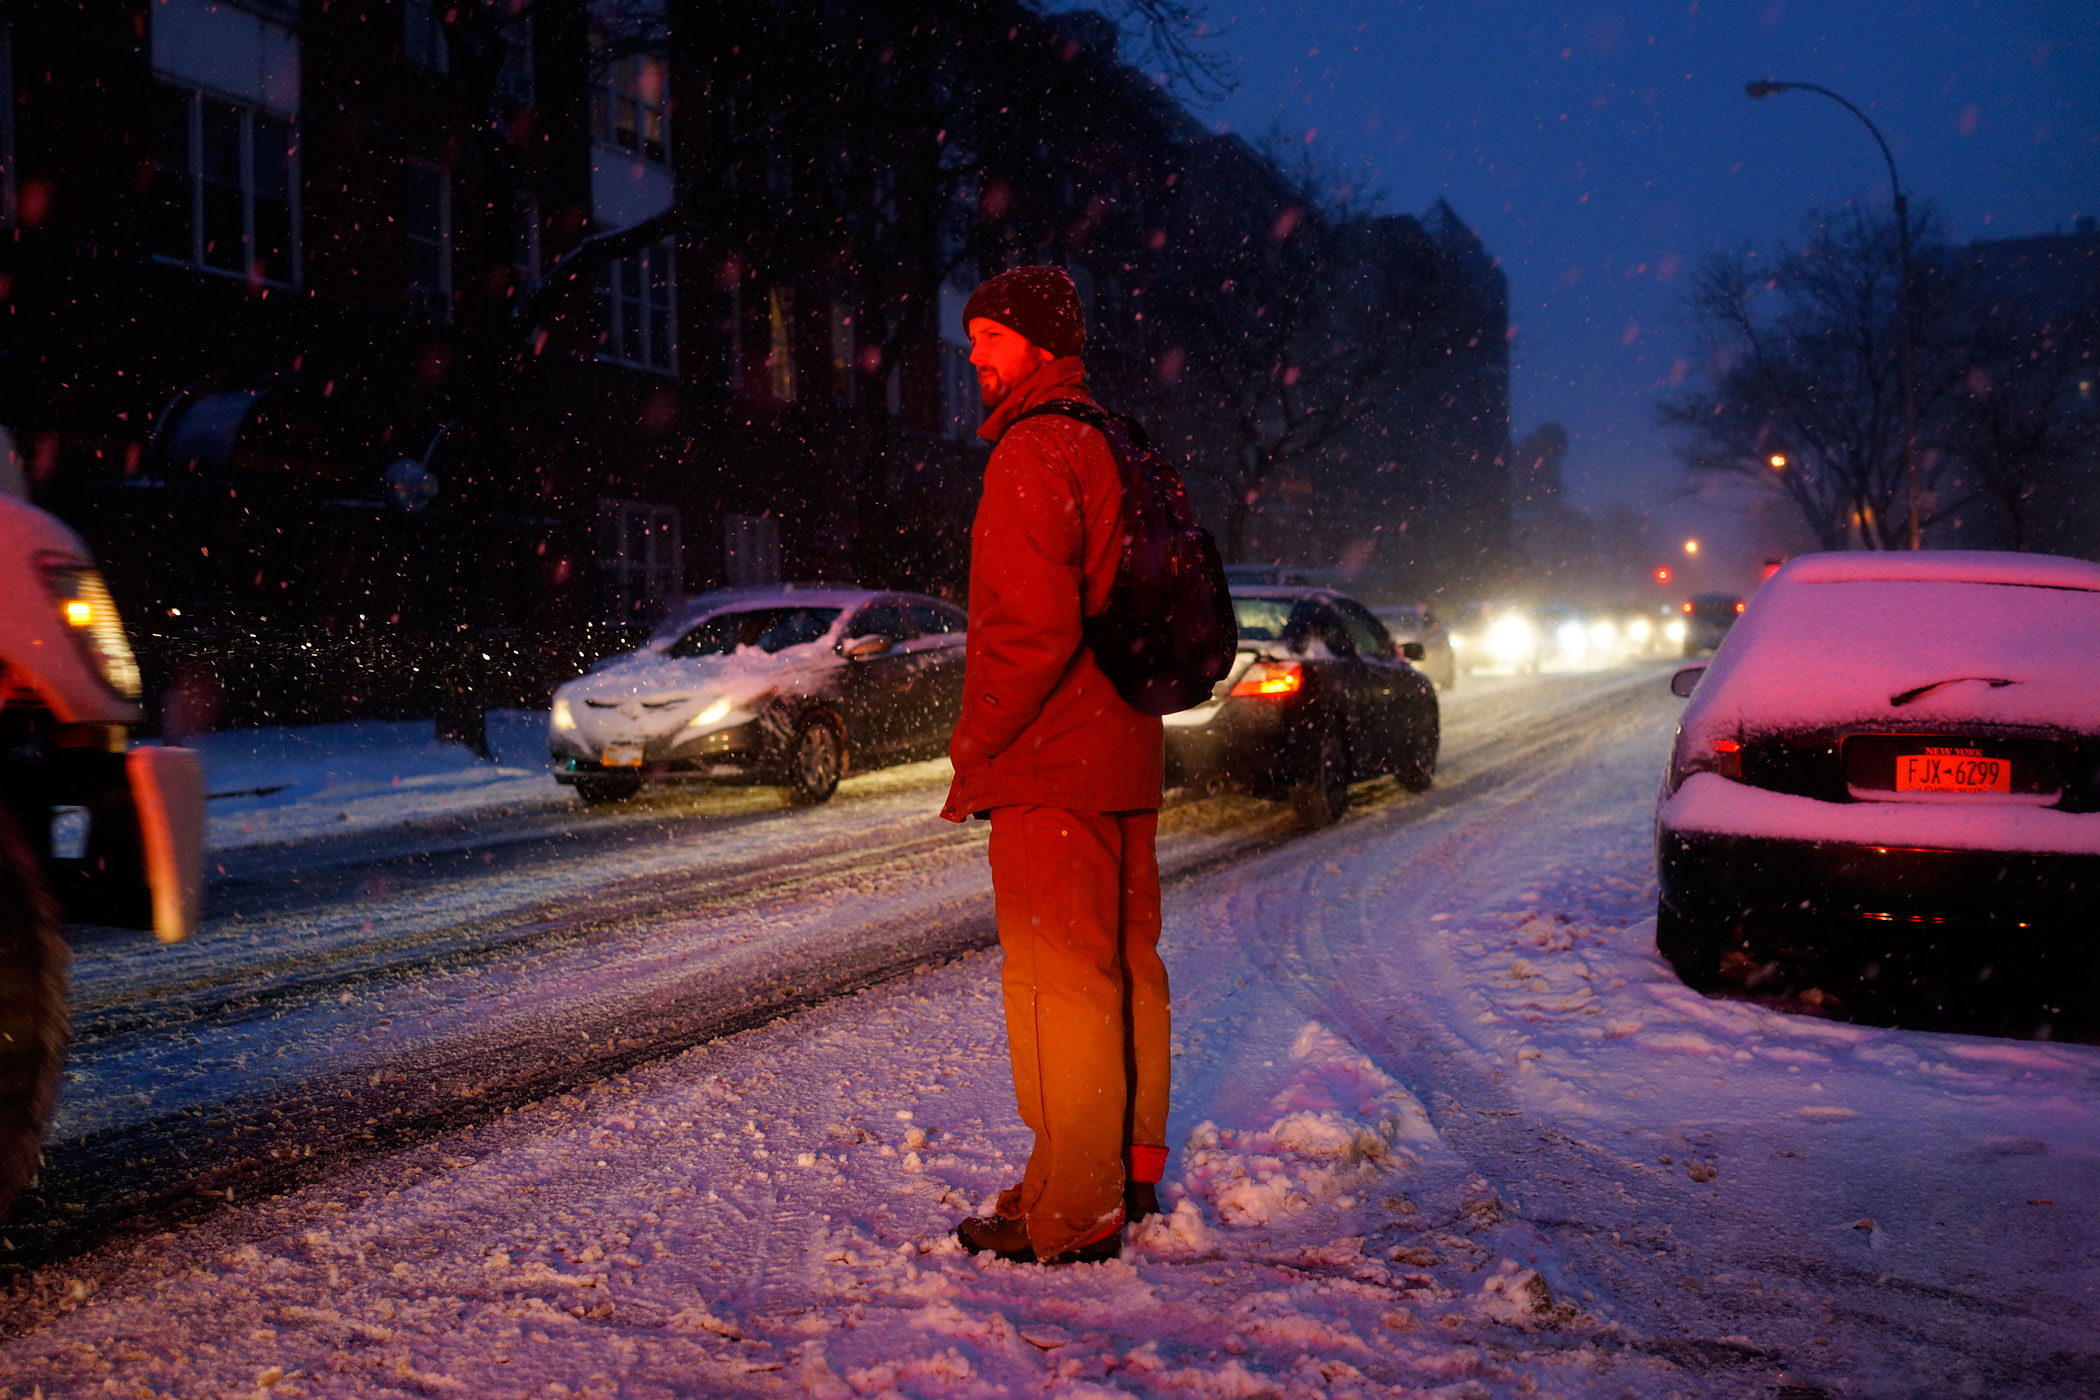 A man waits to cross the street in Brooklyn, NY on Jan. 26, 2015.